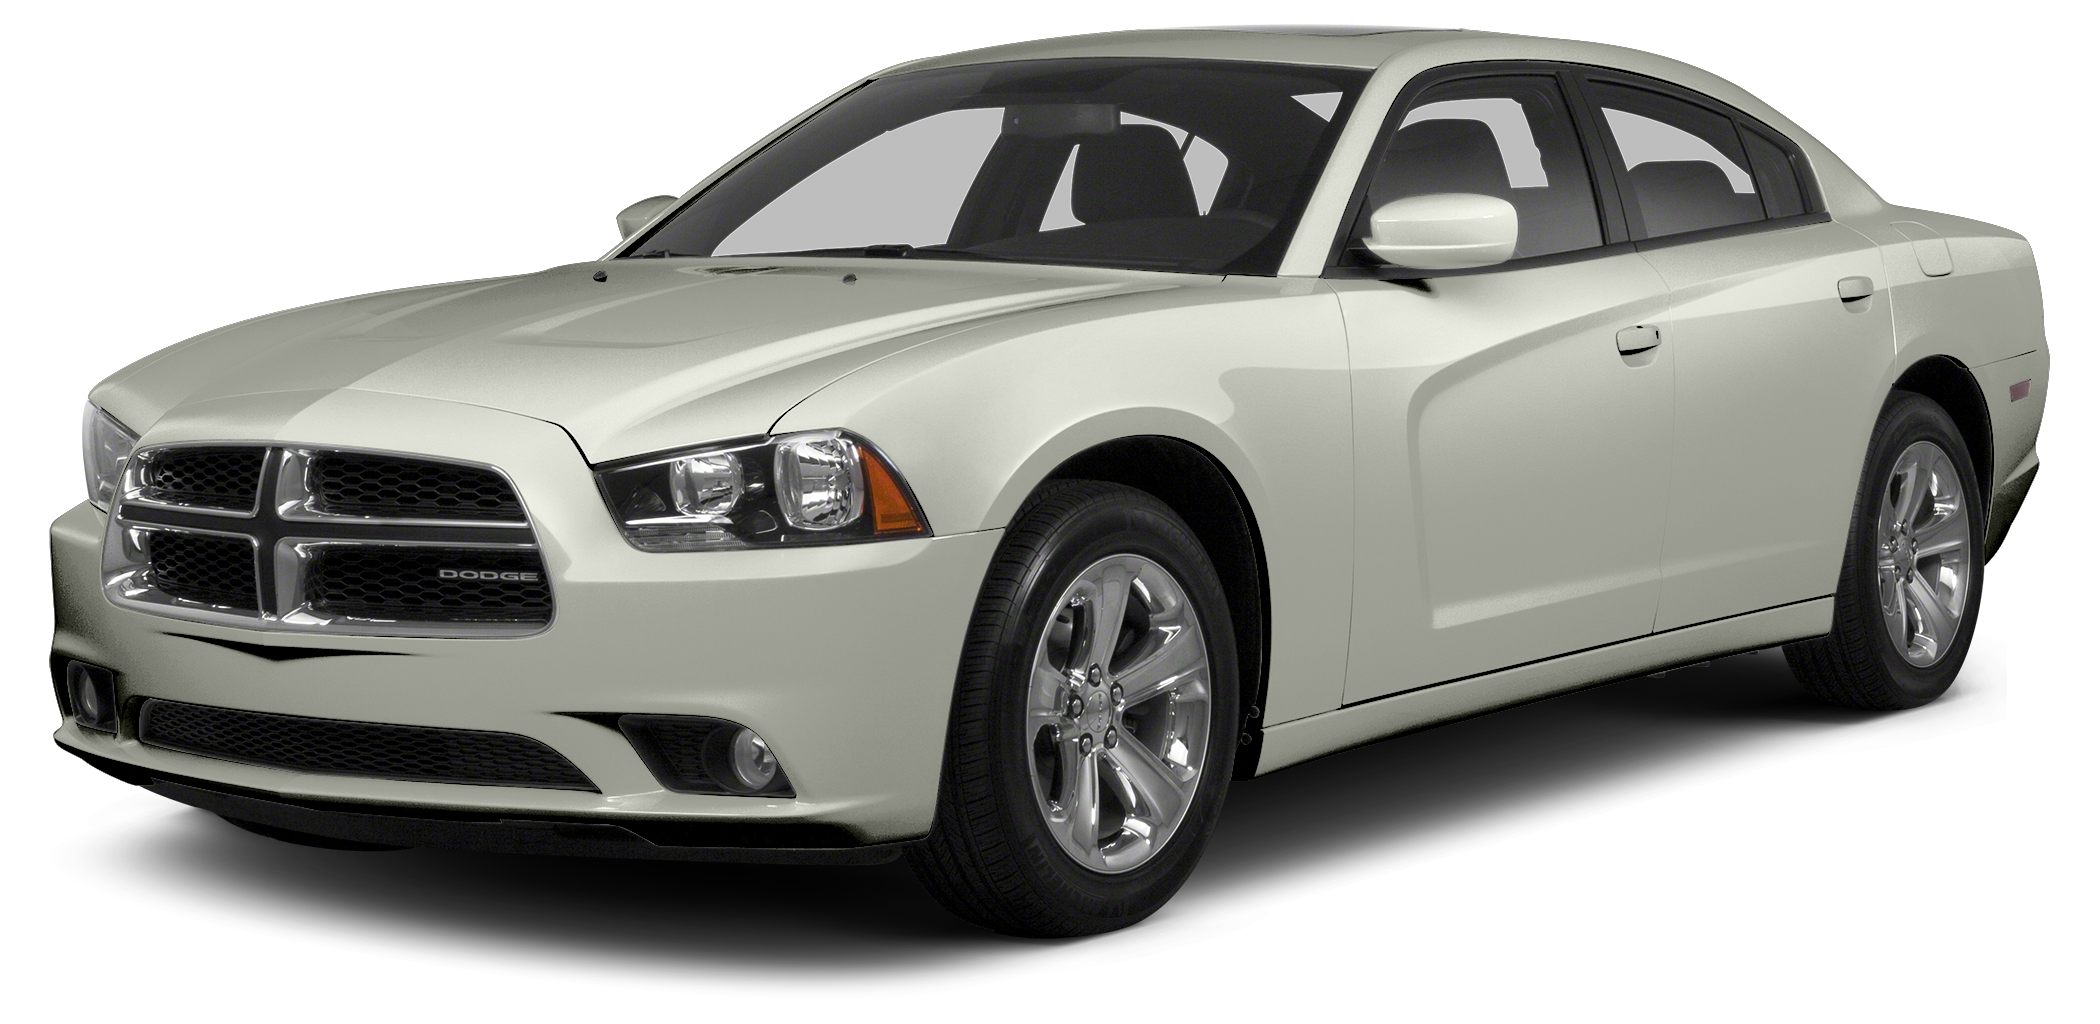 2013 Dodge Charger RT Excellent Condition Dodge Certified CARFAX 1-Owner GREAT MILES 33717